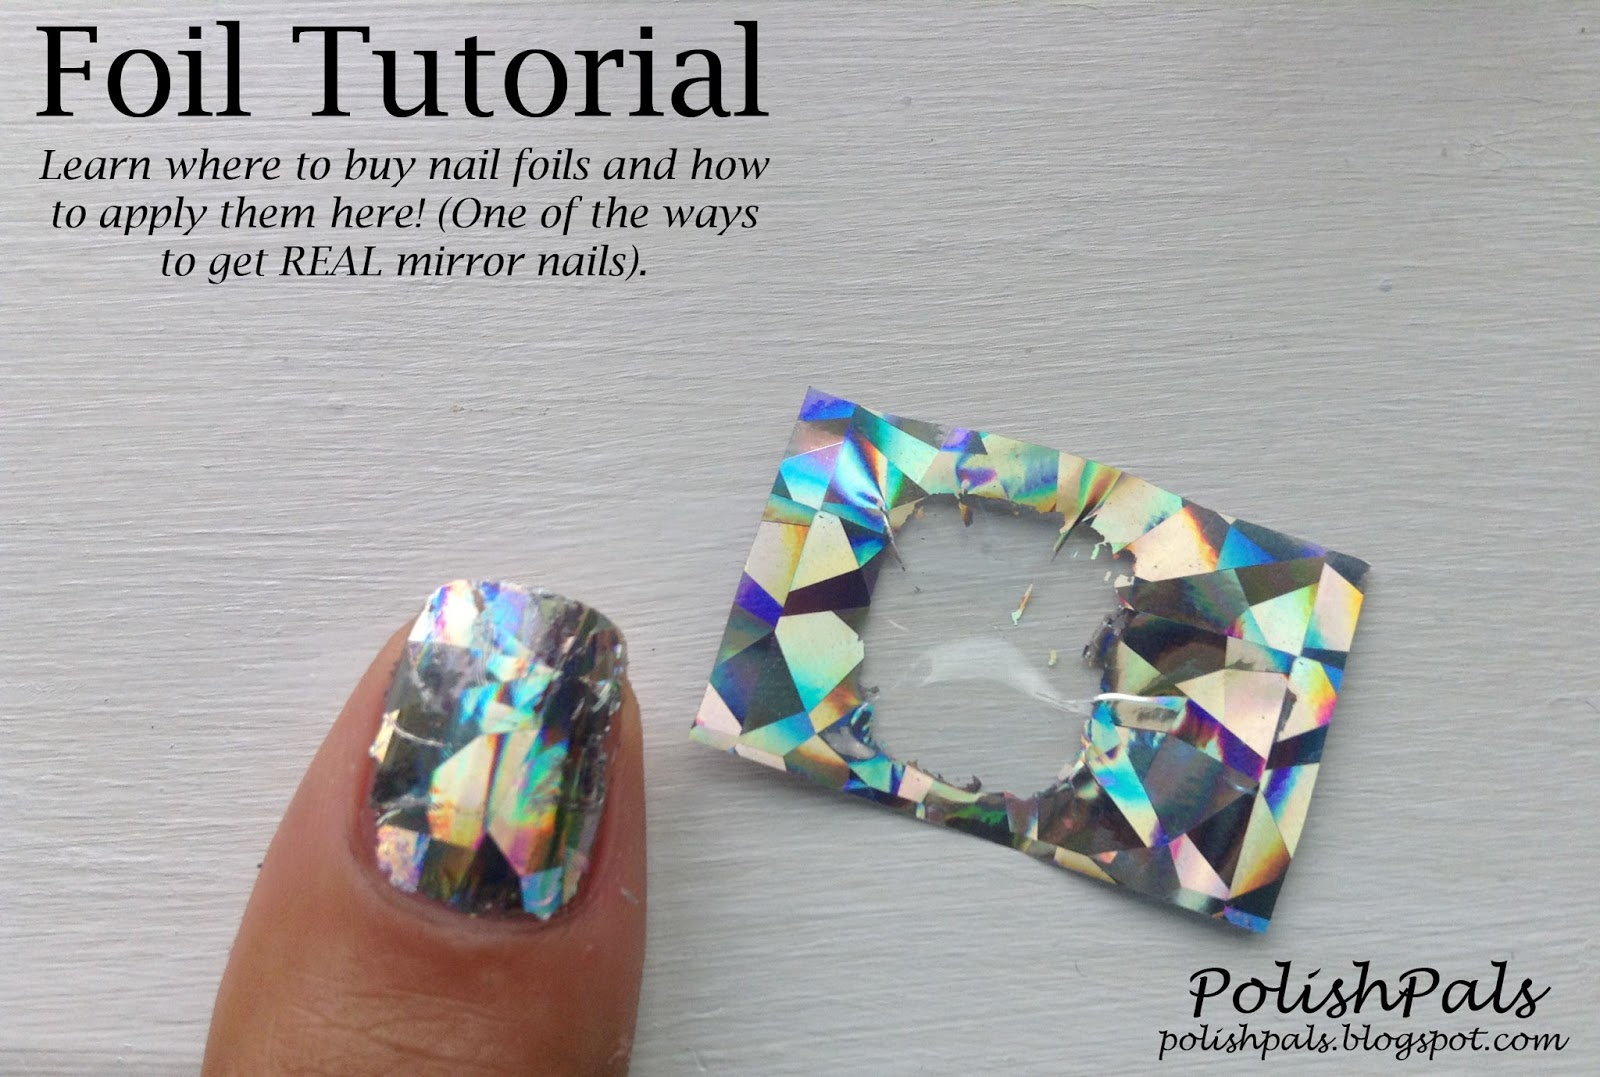 Polish Pals Nail Foil Tutorial